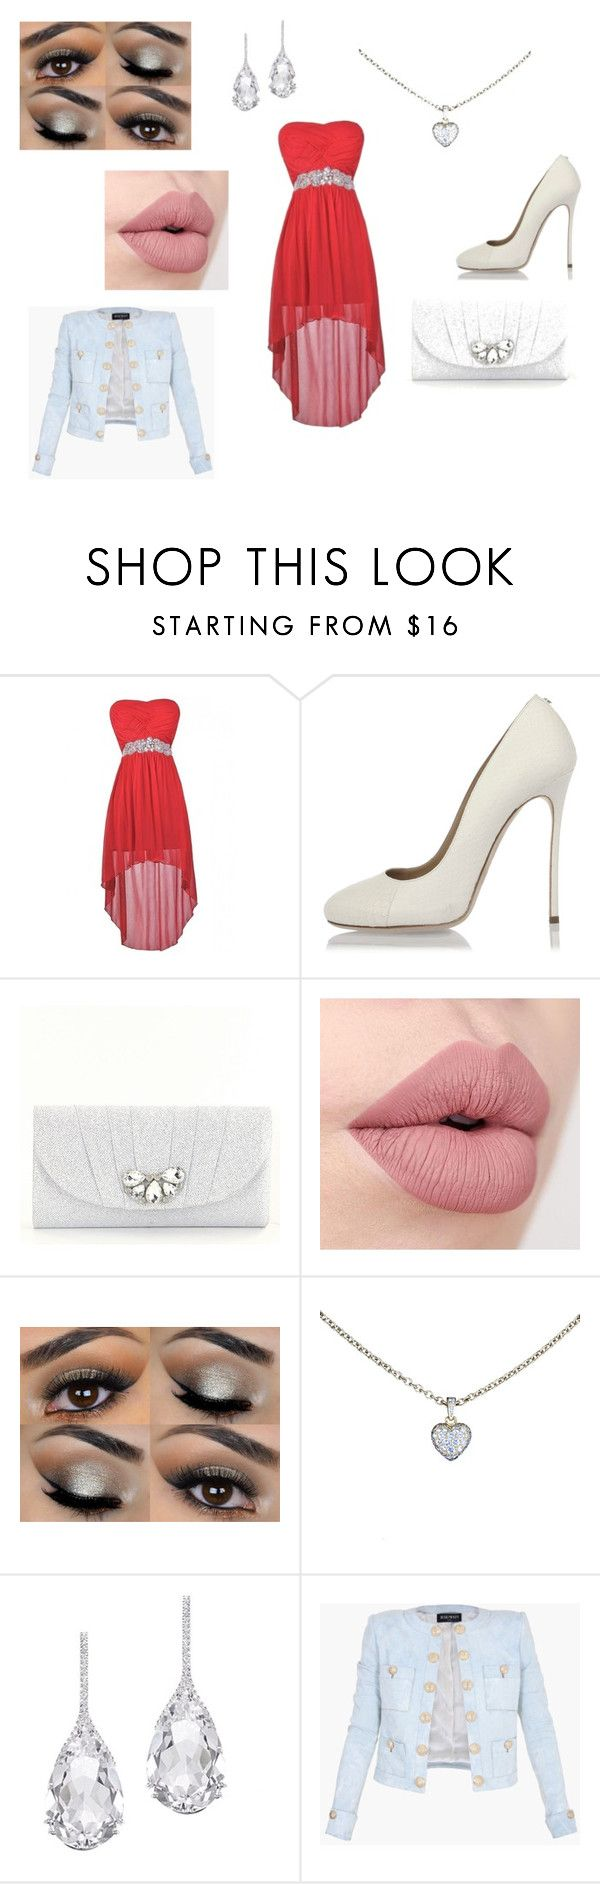 """""""Wedding"""" by heddastoltnielsen on Polyvore featuring Dsquared2, Kate Landry, Cartier, Plukka and Balmain"""